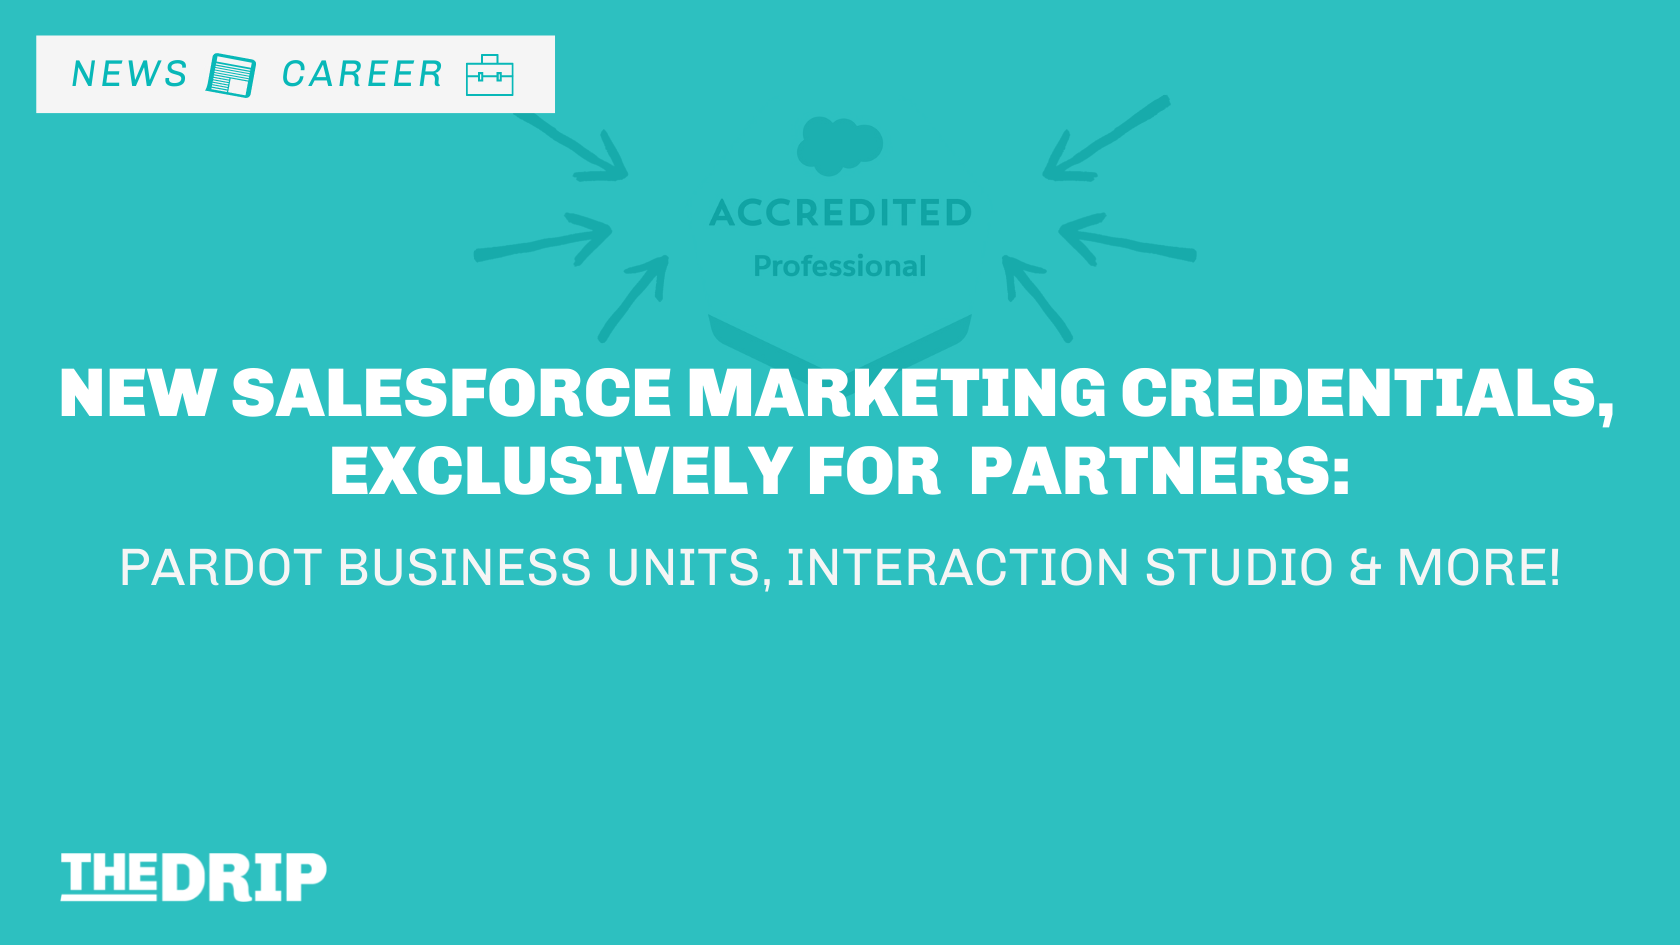 8 New Marketing Credentials Exclusively for Salesforce Partners: Pardot Business Units, Interaction Studio, and more!